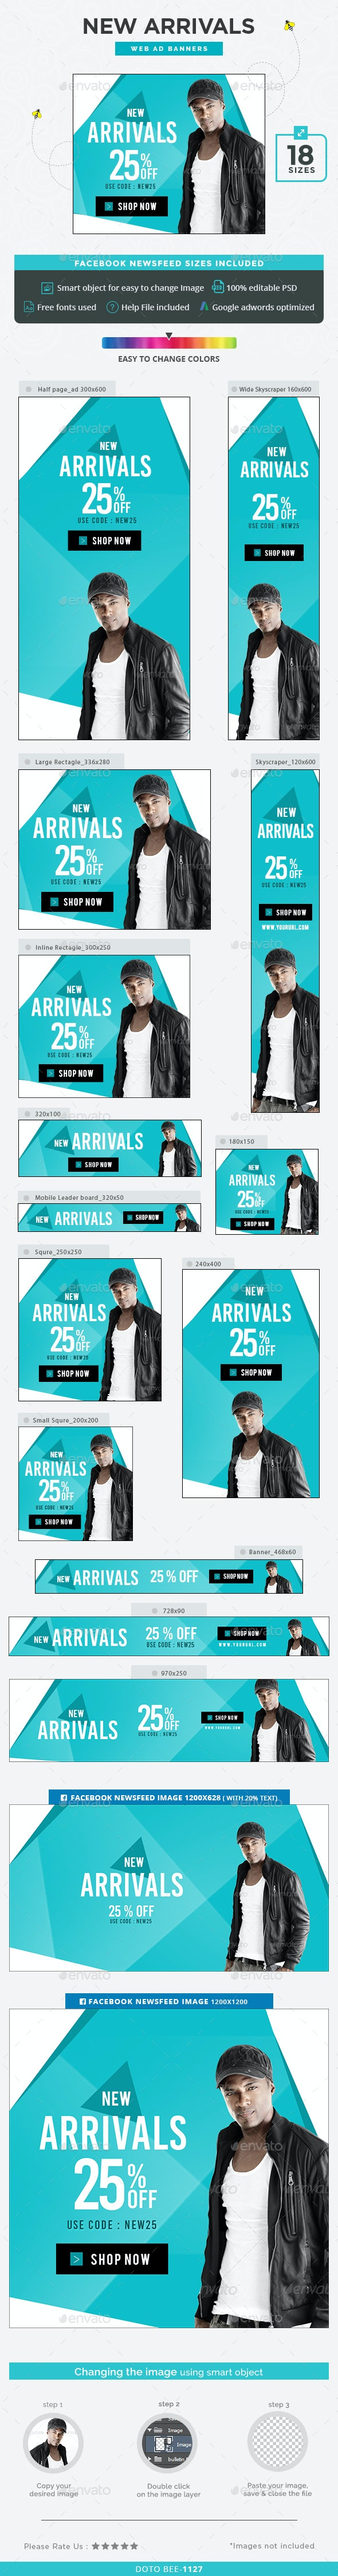 New Arrivals Banners - Banners & Ads Web Elements